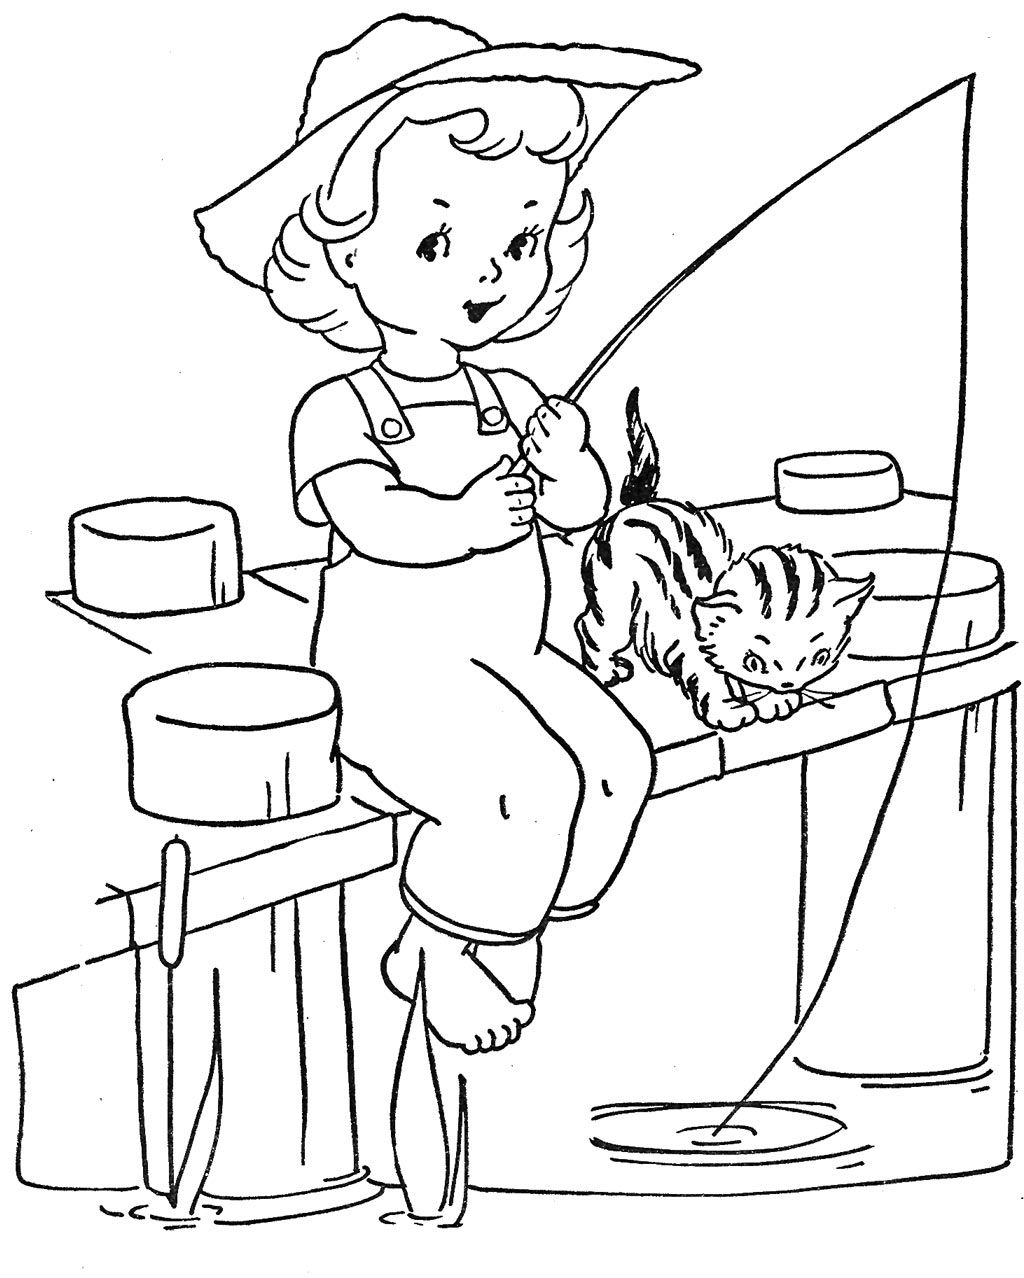 coloring pages for girls designs pin on artistic designs girls coloring pages designs for